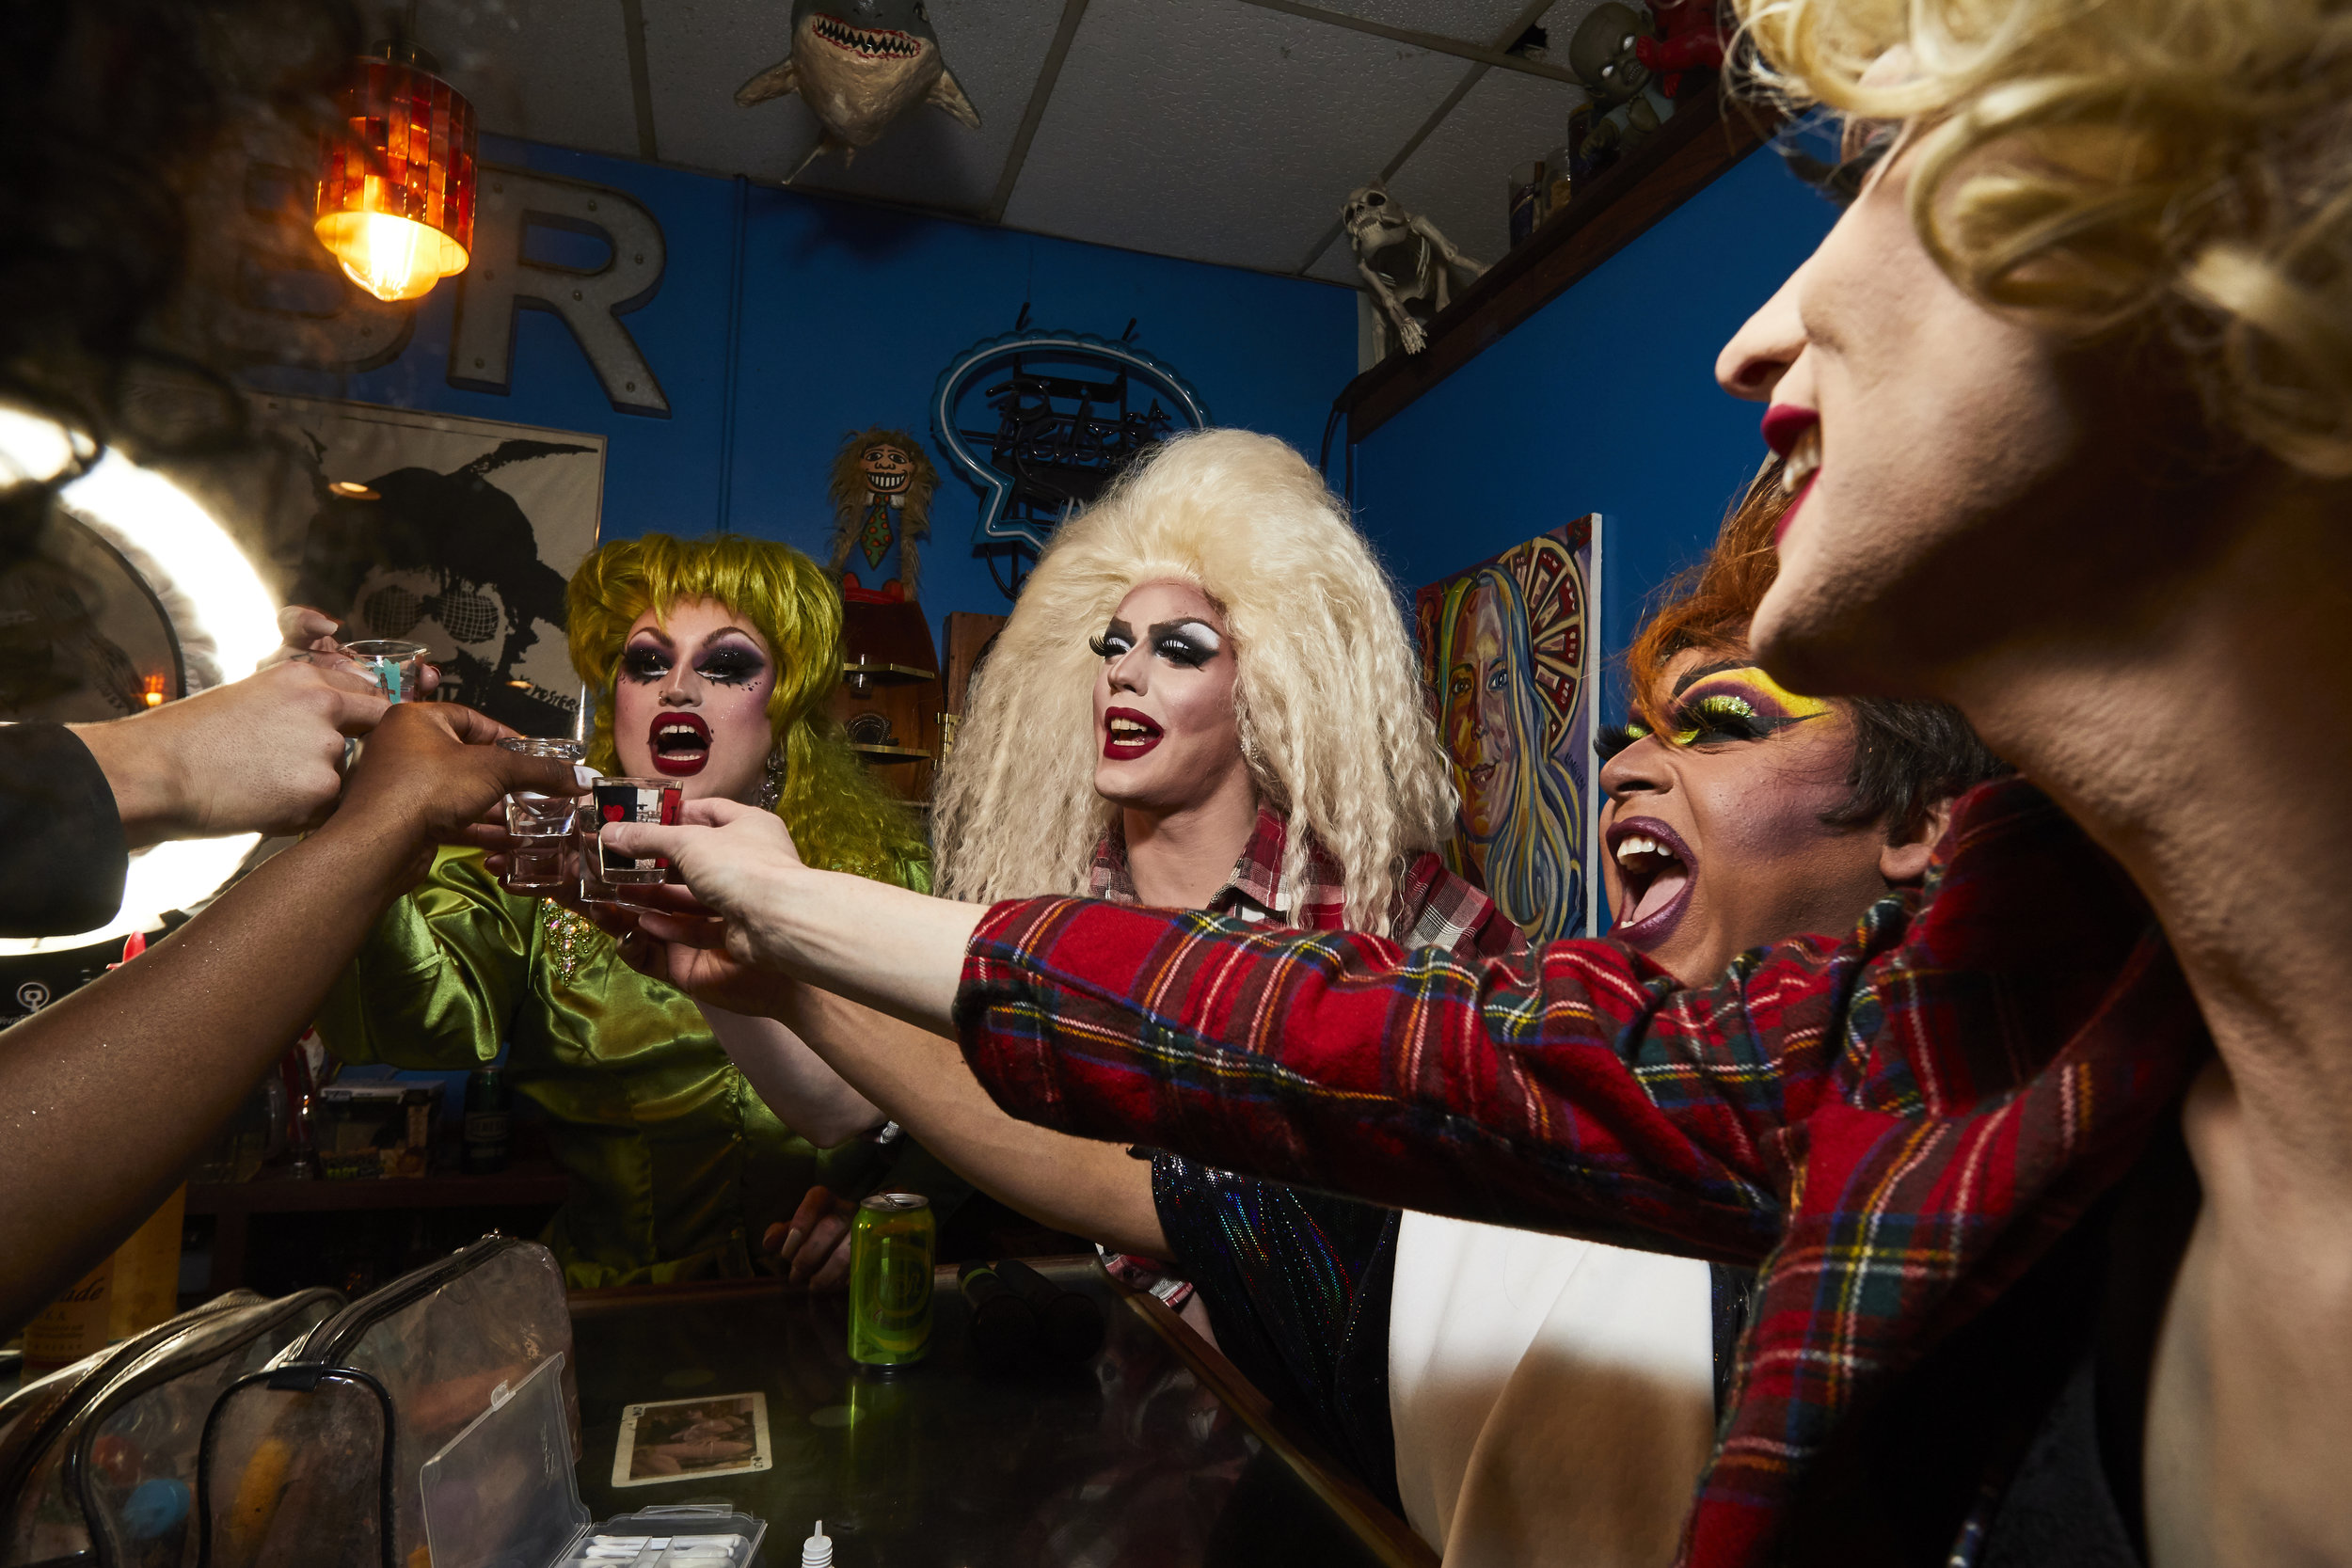 Drag queens Wednesday Westwood, Veronica Lace, Samantha Vega, and Judy Darling have a celebratory drink before performing at Lux Lounge for the two-year anniversary of What the Frock Friday.